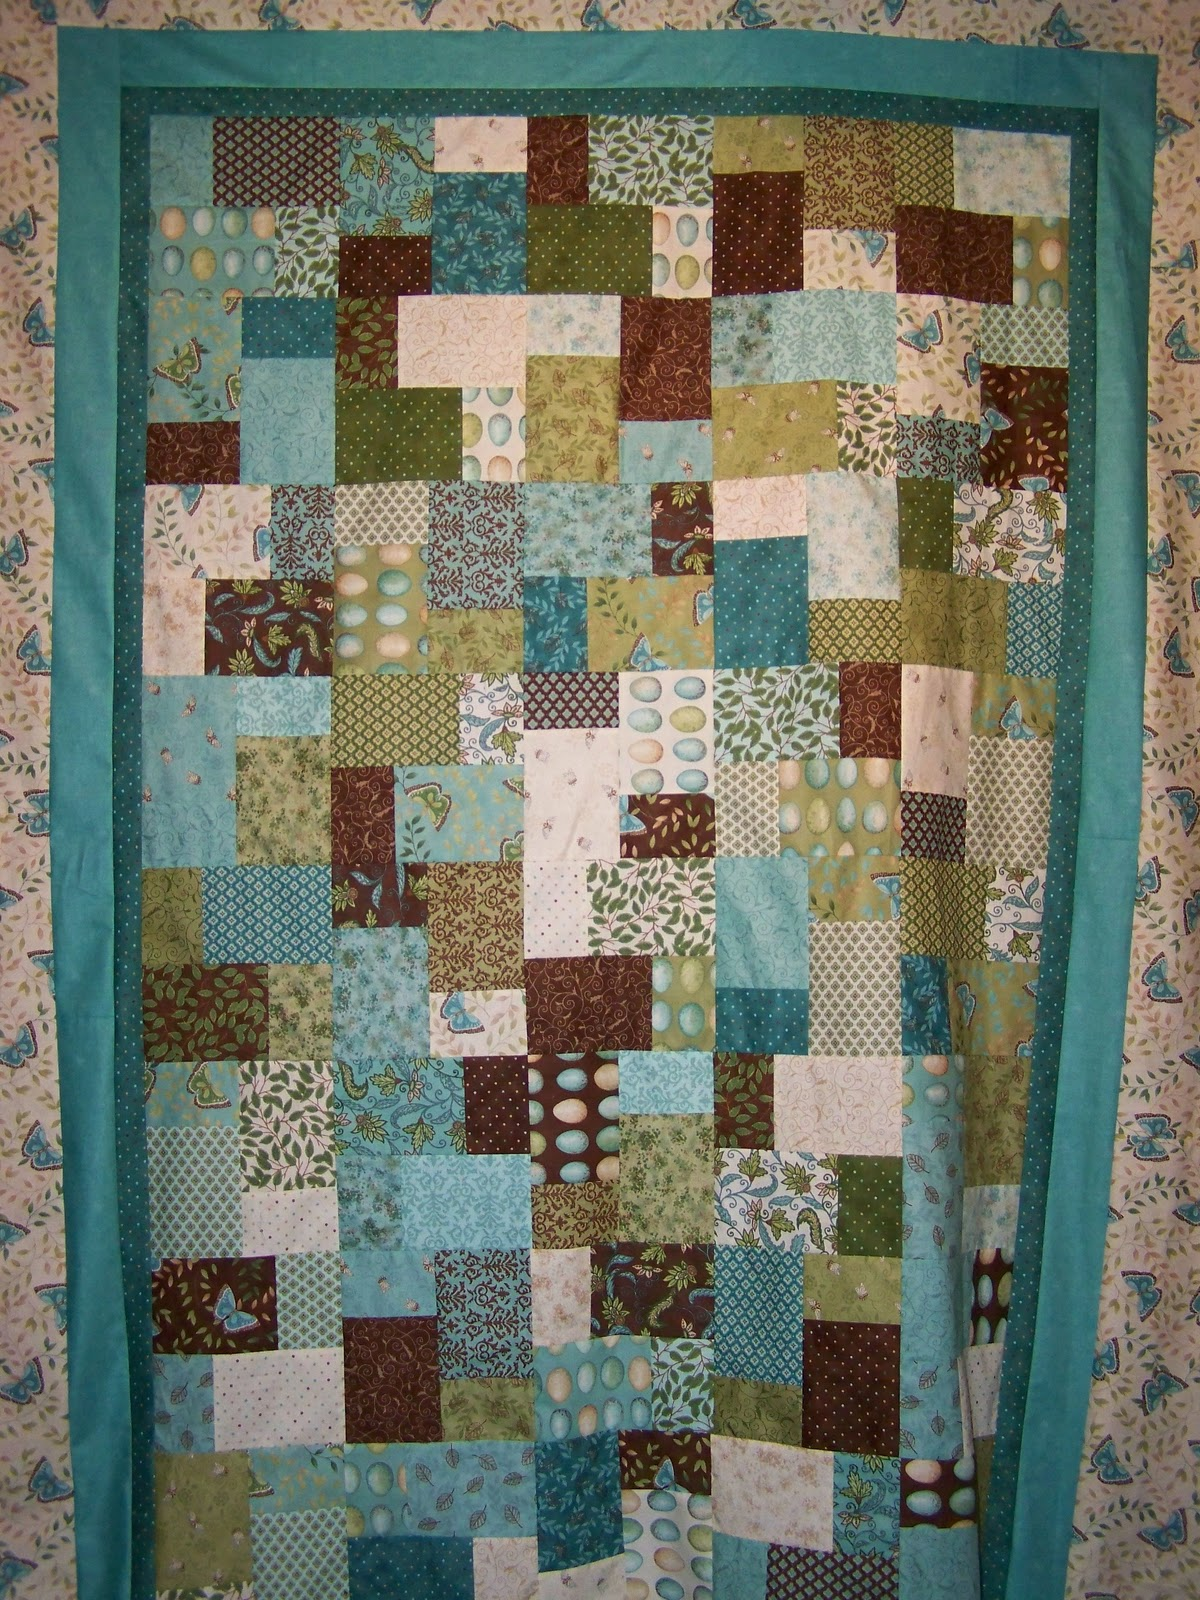 Easy Quilt Patterns With Layer Cakes : Pin Simply Stripy Quilt Pattern Easy And Quick Layer Cake Ebay Cake on Pinterest